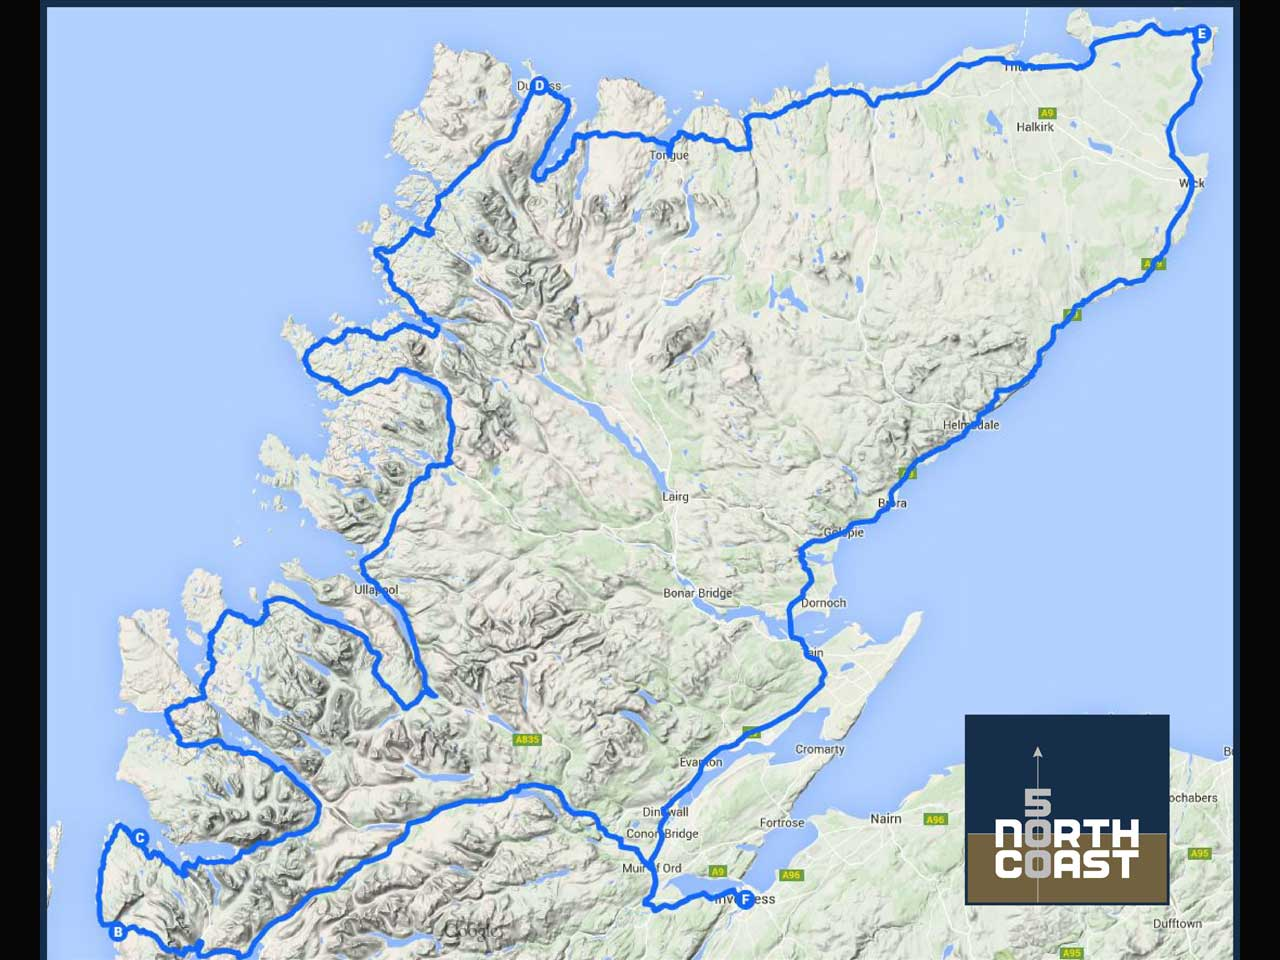 Map of the North Coast 500 route in Scotland